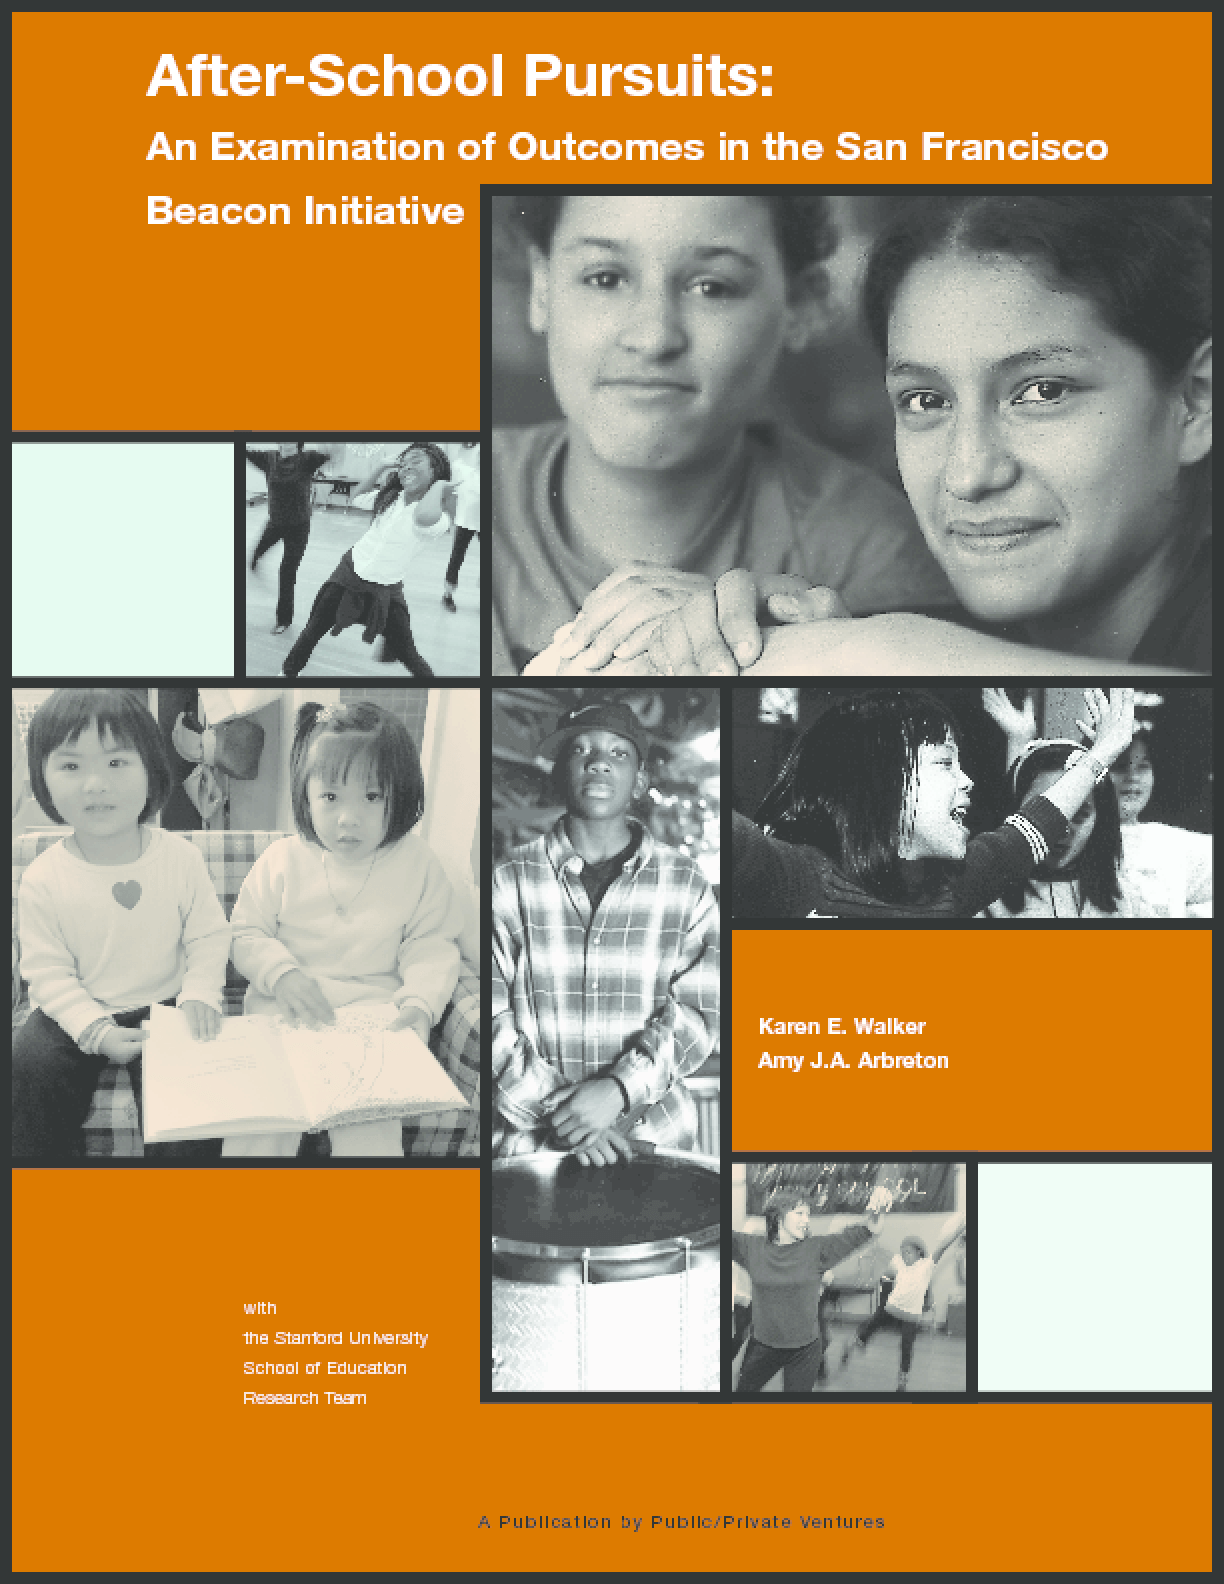 After-School Pursuits: An Examination of Outcomes in the San Francisco Beacon Initiative